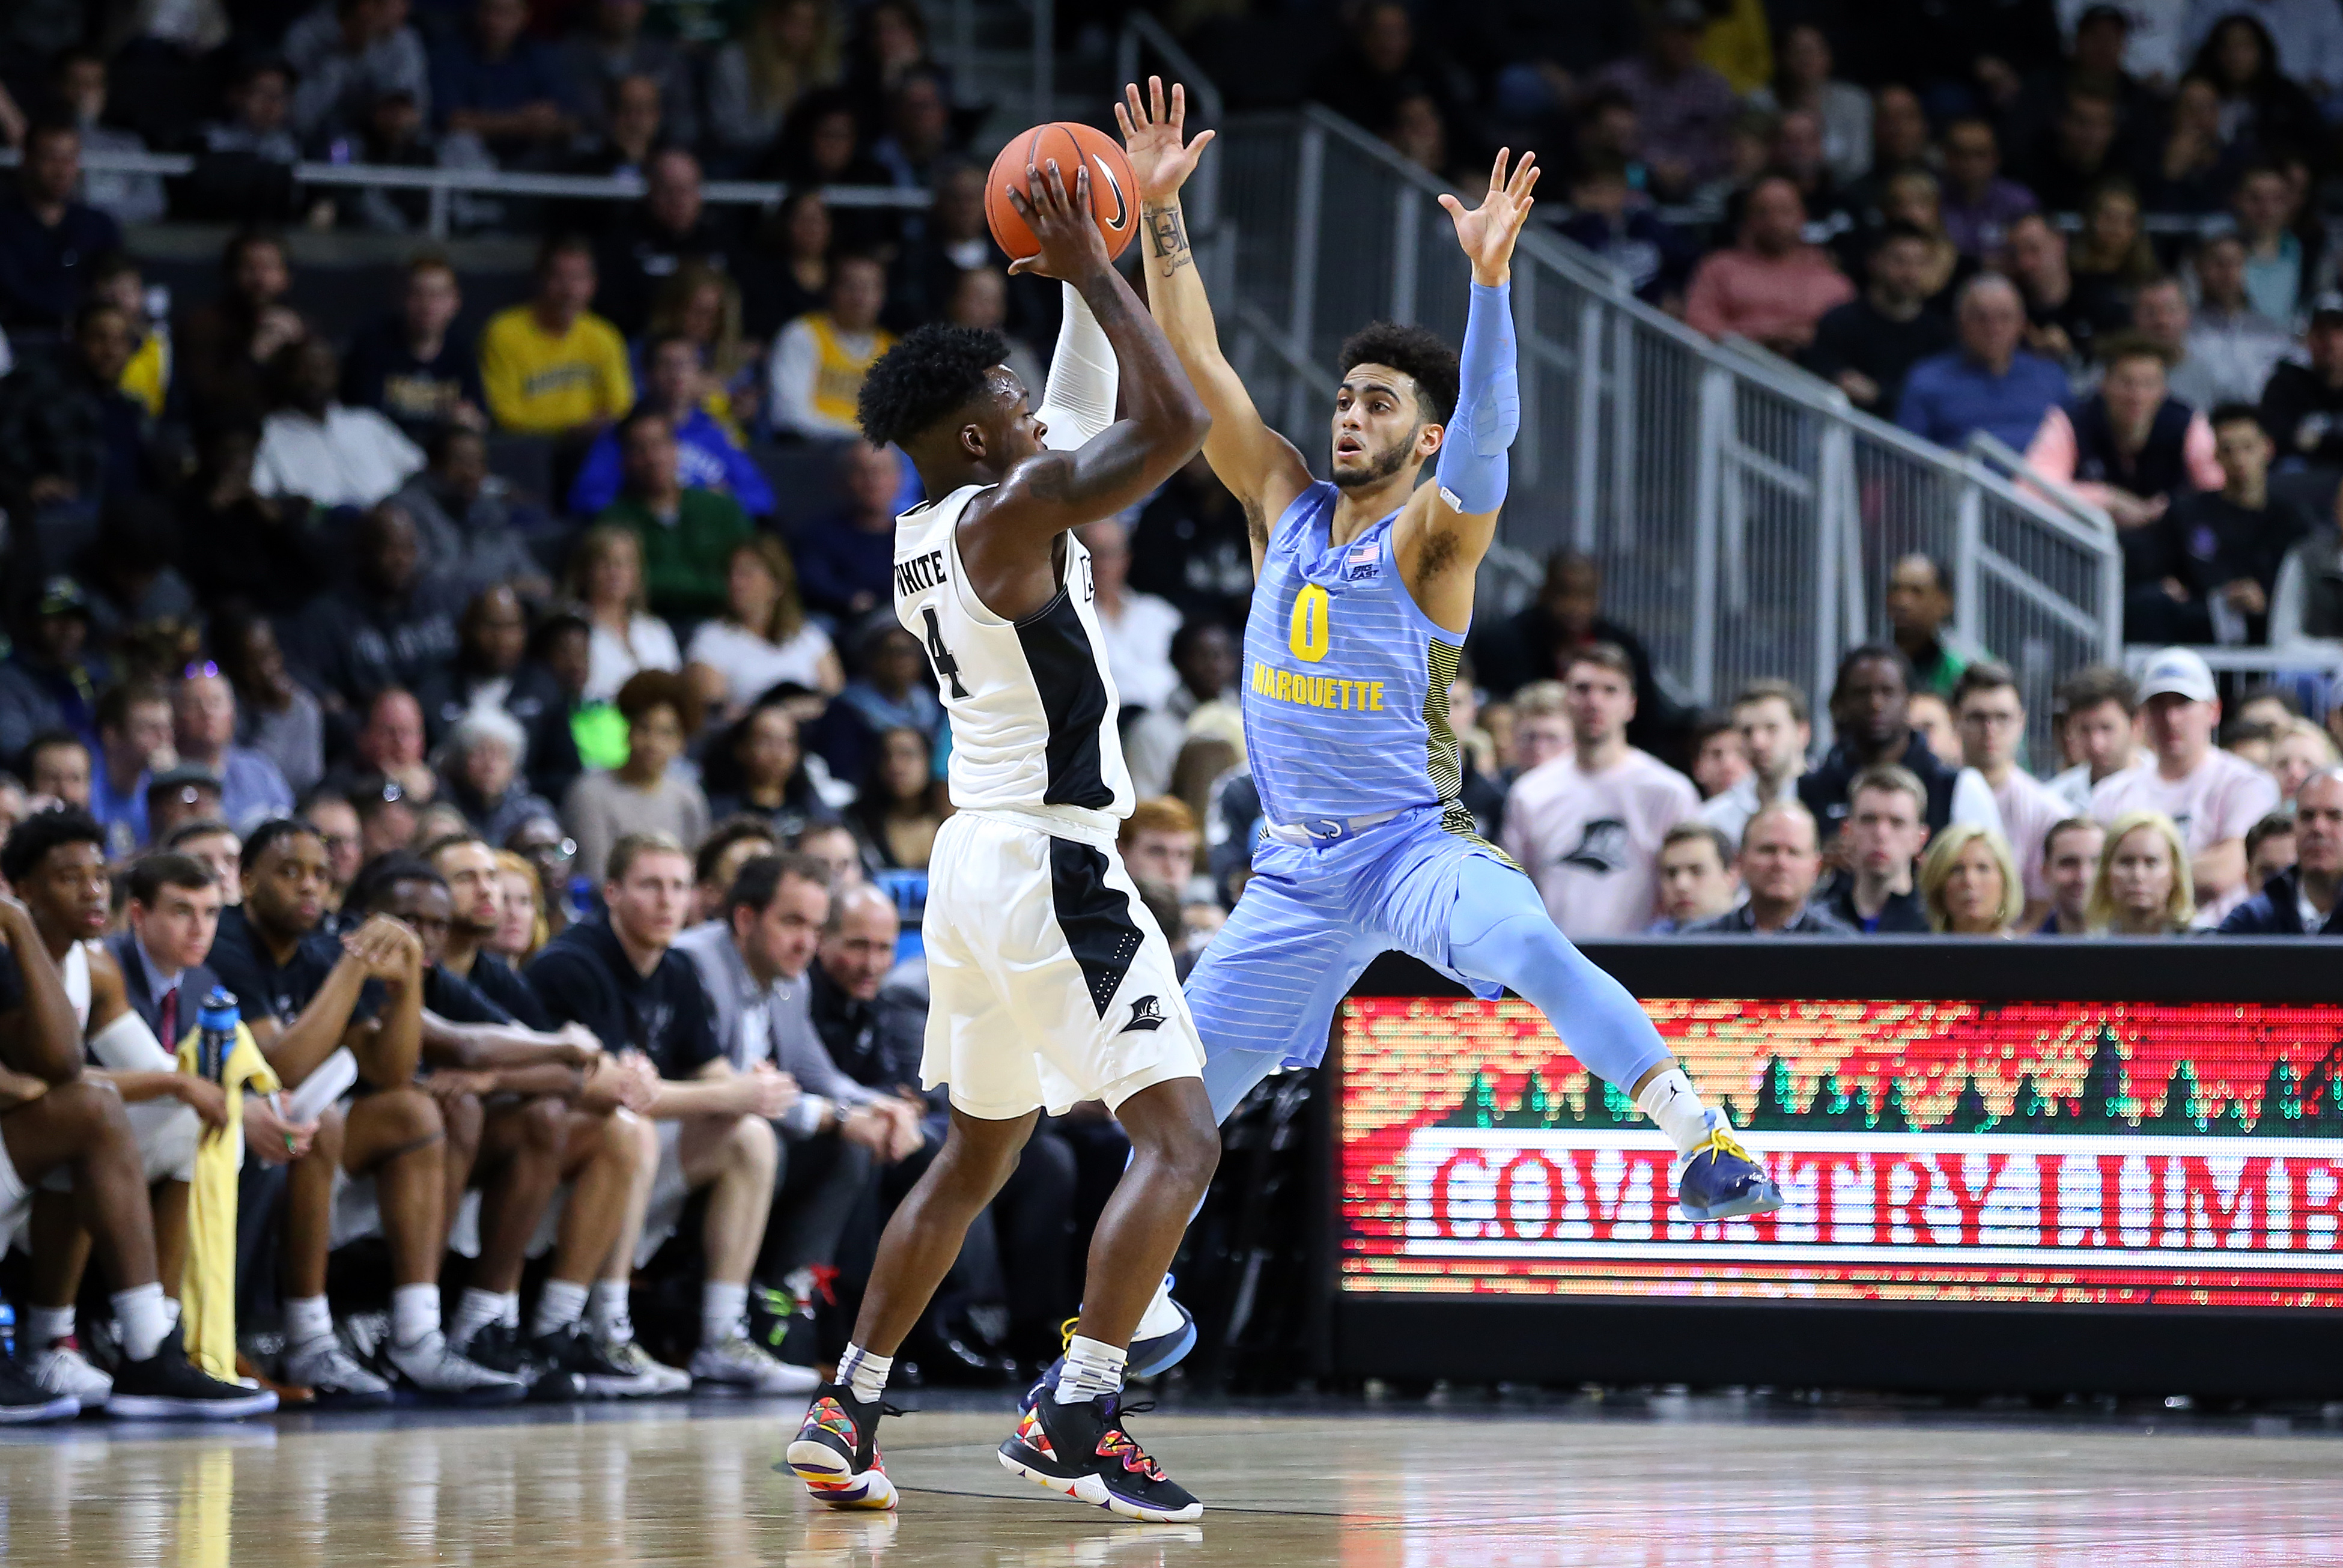 COLLEGE BASKETBALL: FEB 23 Marquette at Providence